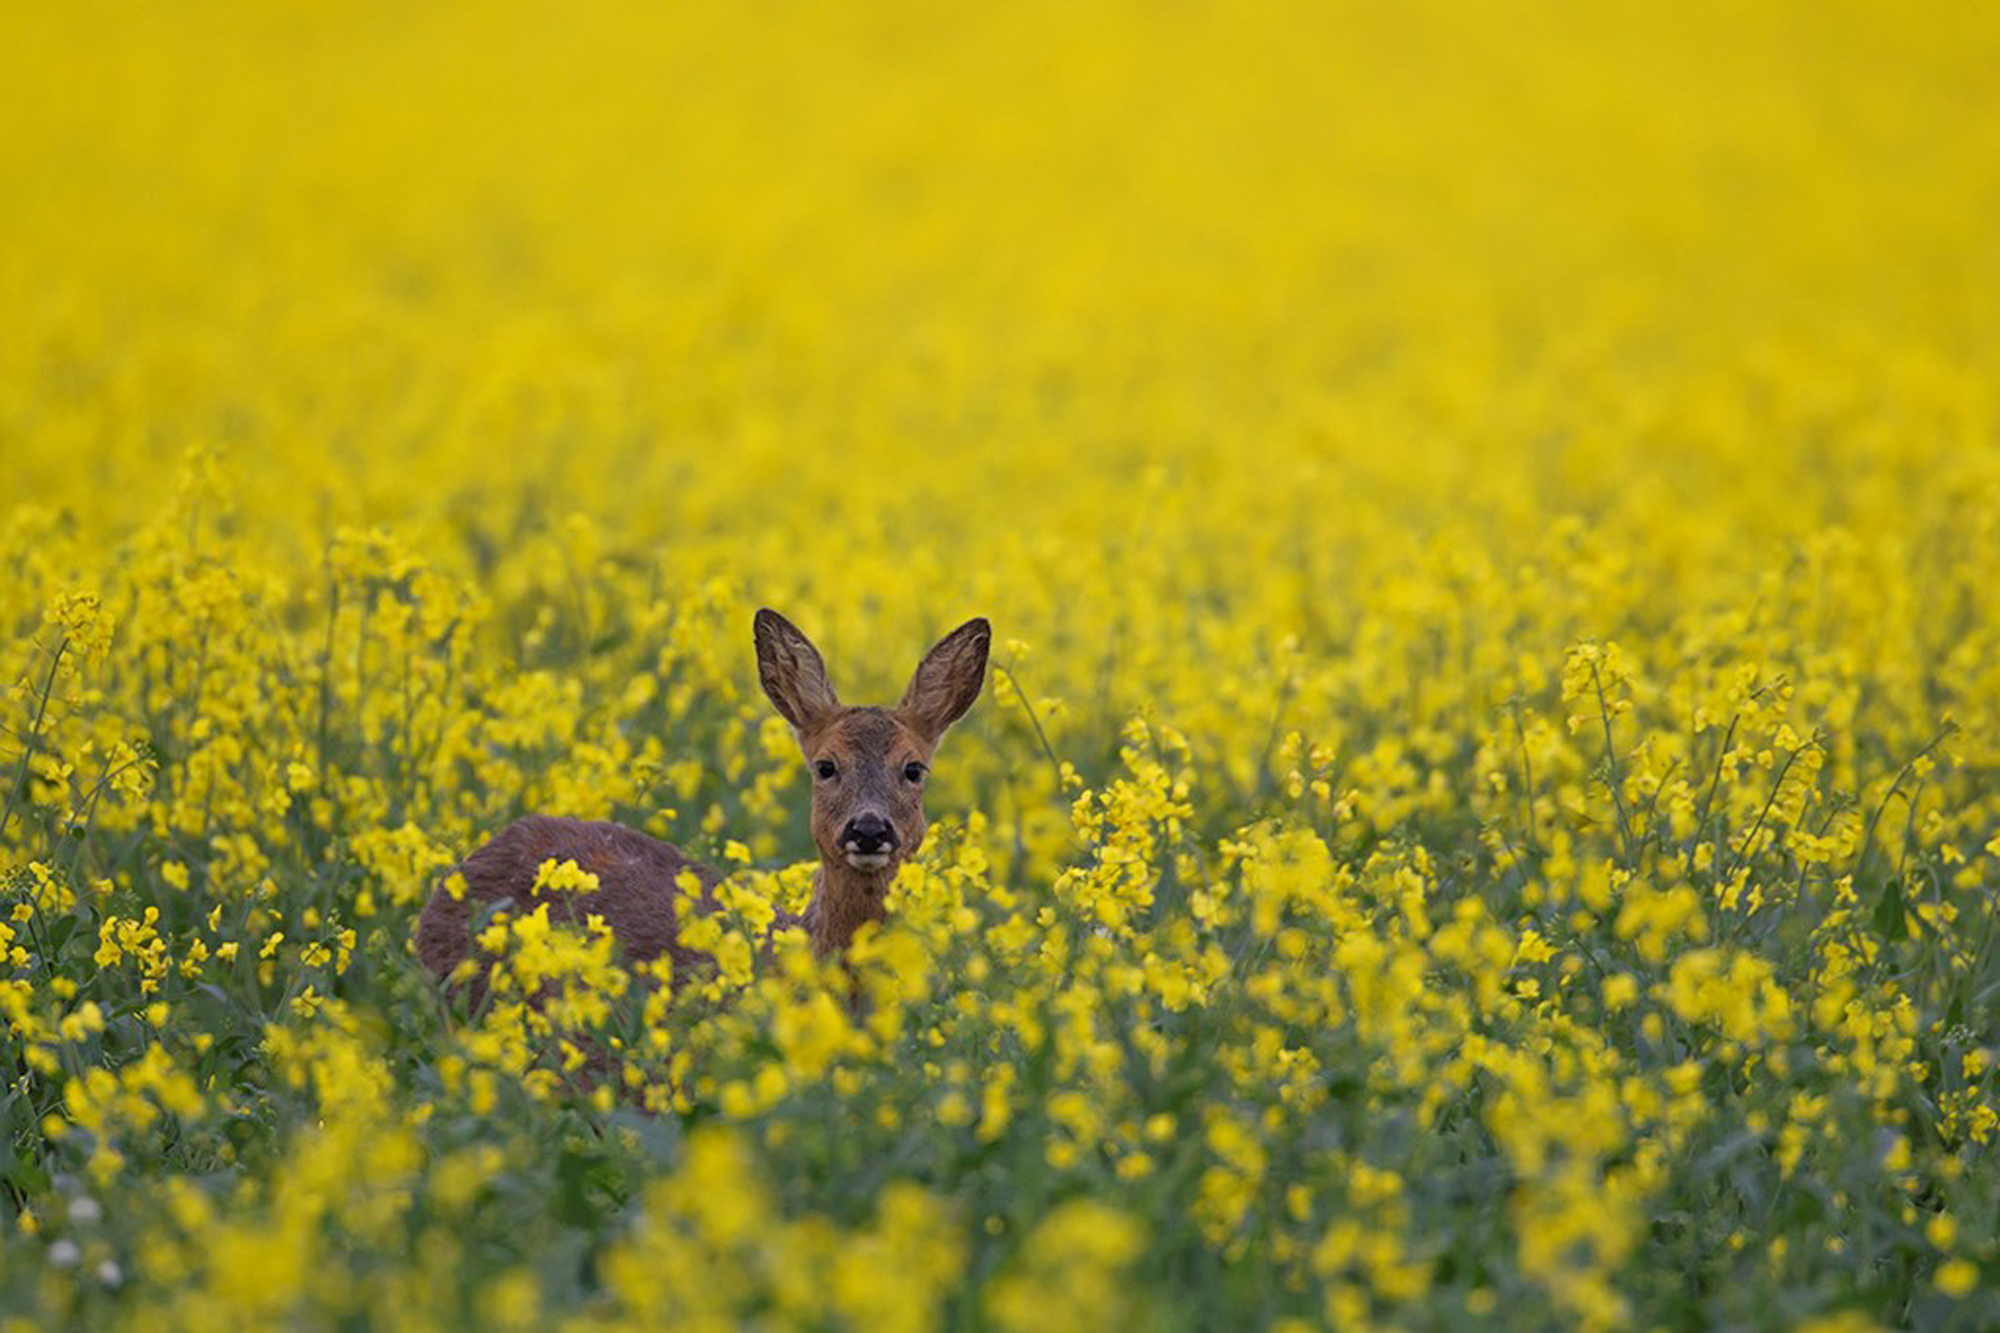 Spring. British Seasons winner 2015, British Wildlife Photography Awards